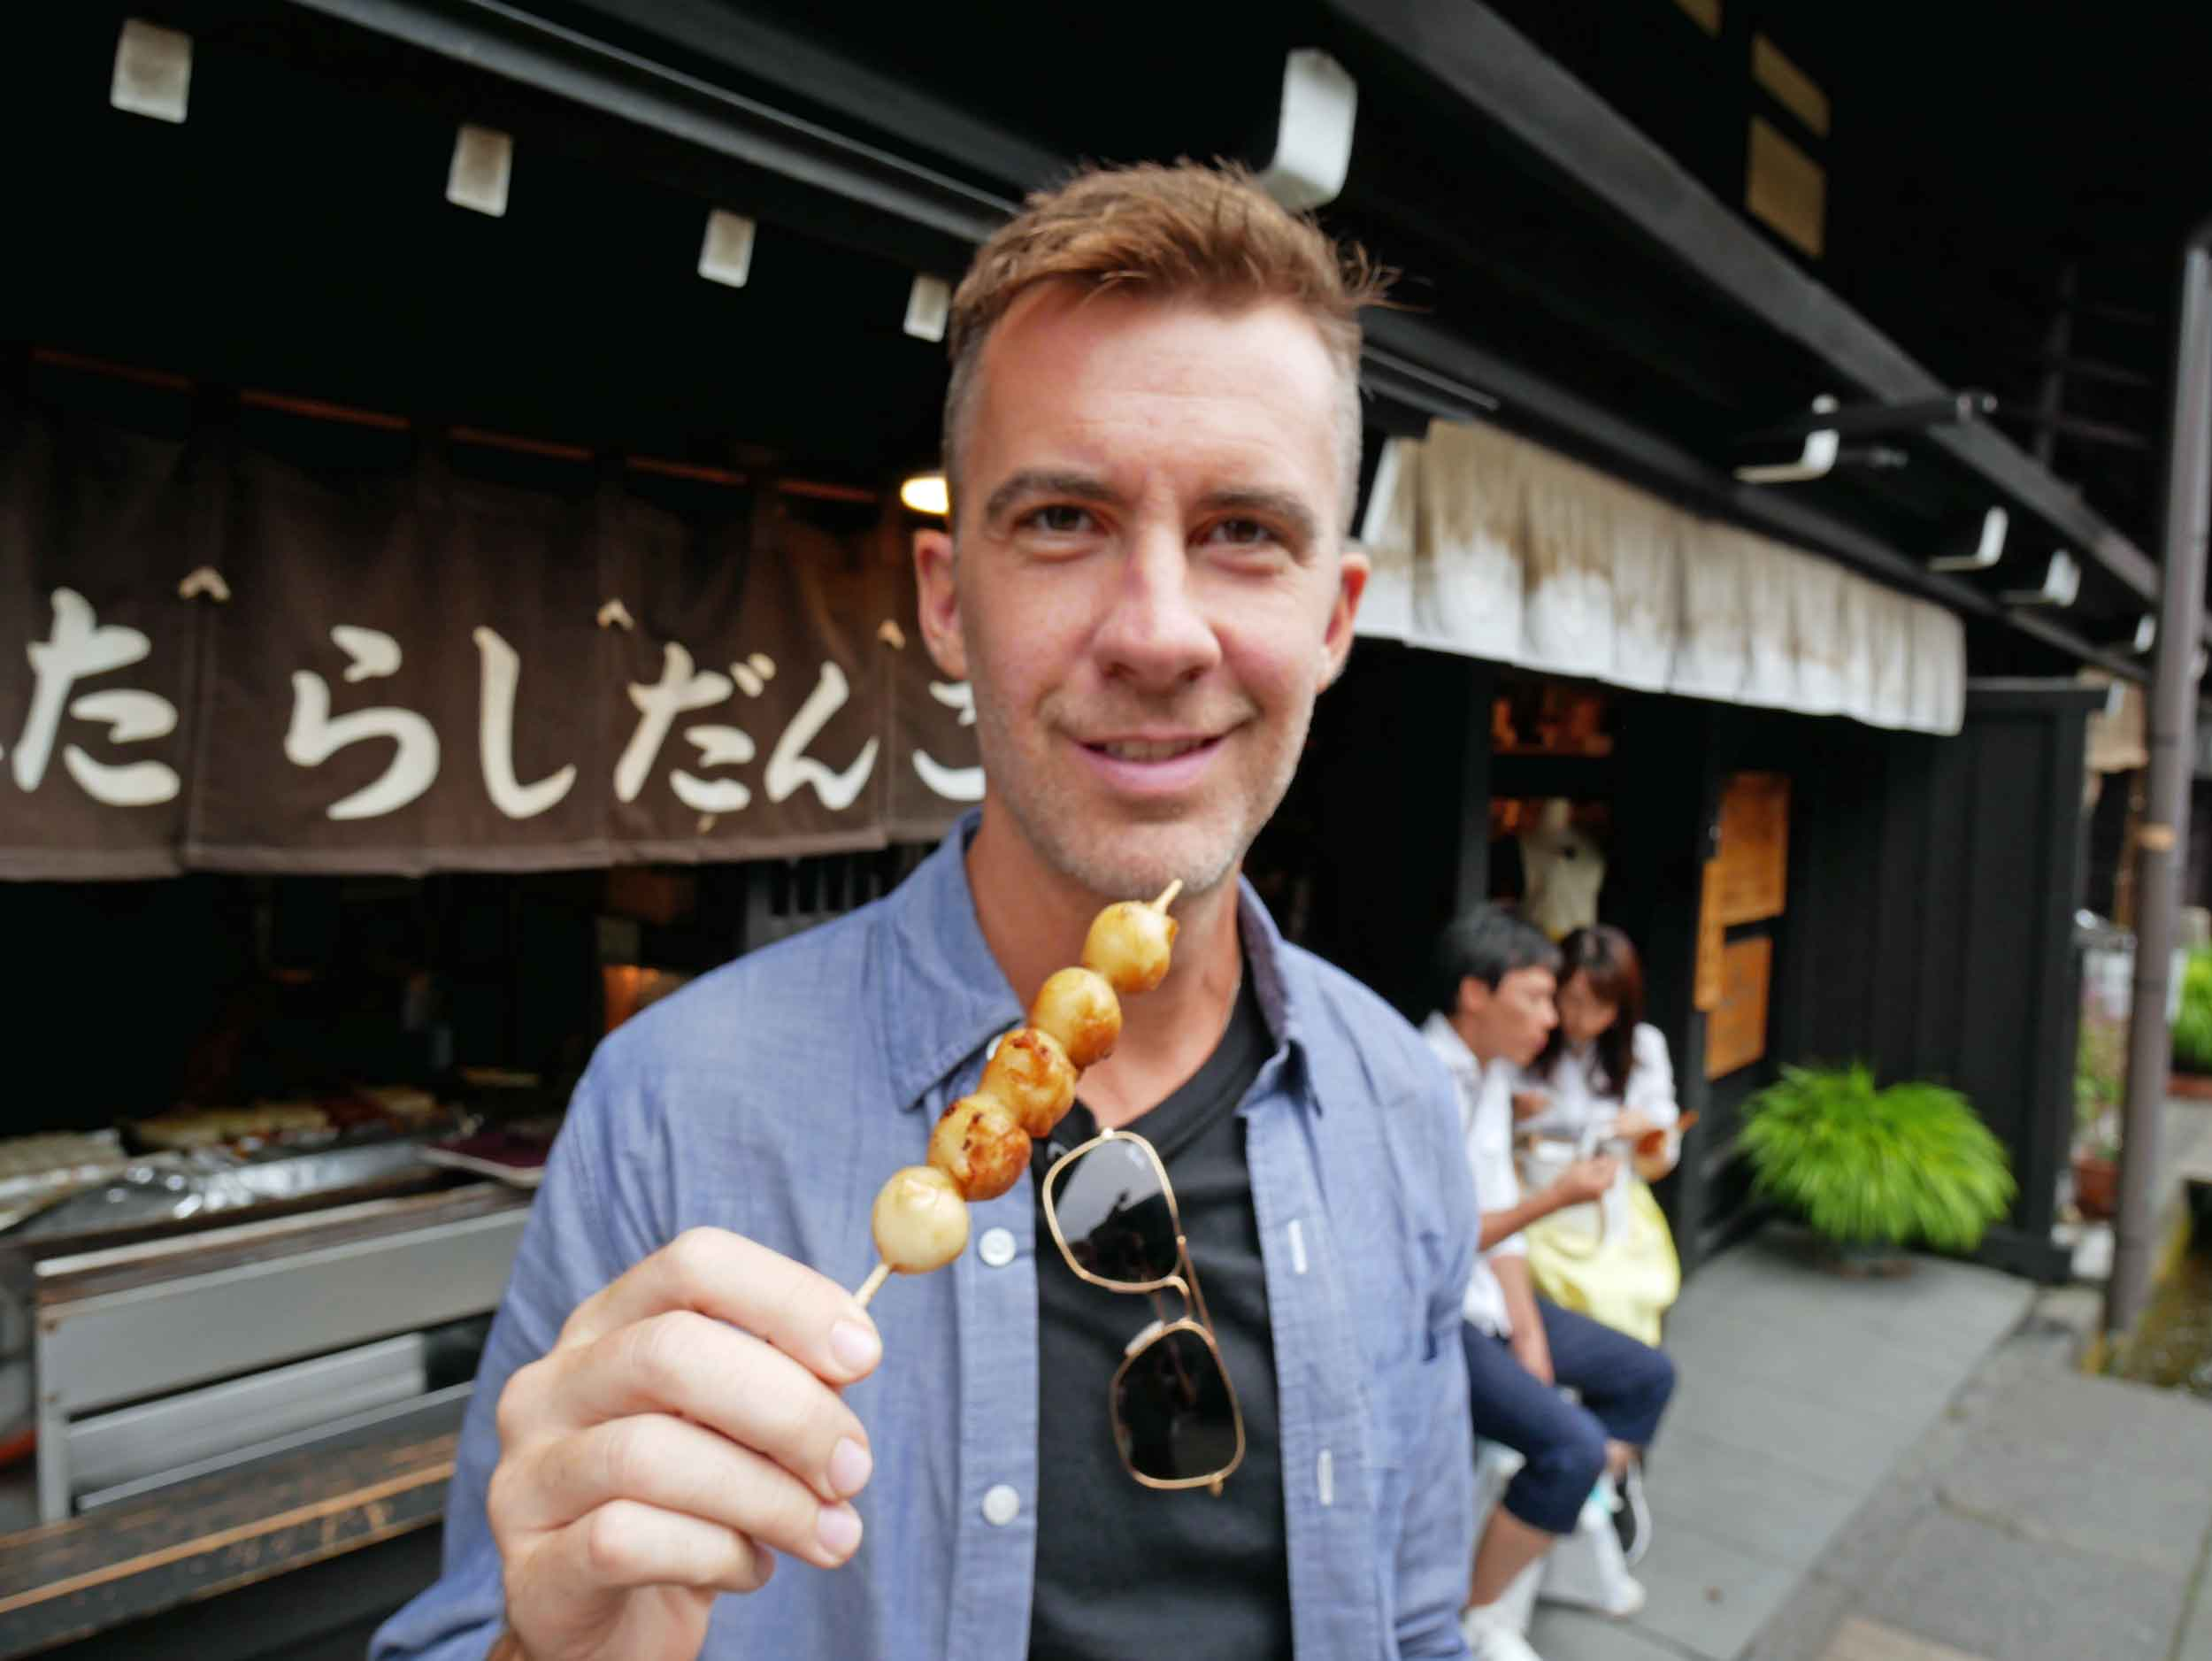 Trey attempts a skewered rice ball with soy sauce, one of the street food eats of Takayama.